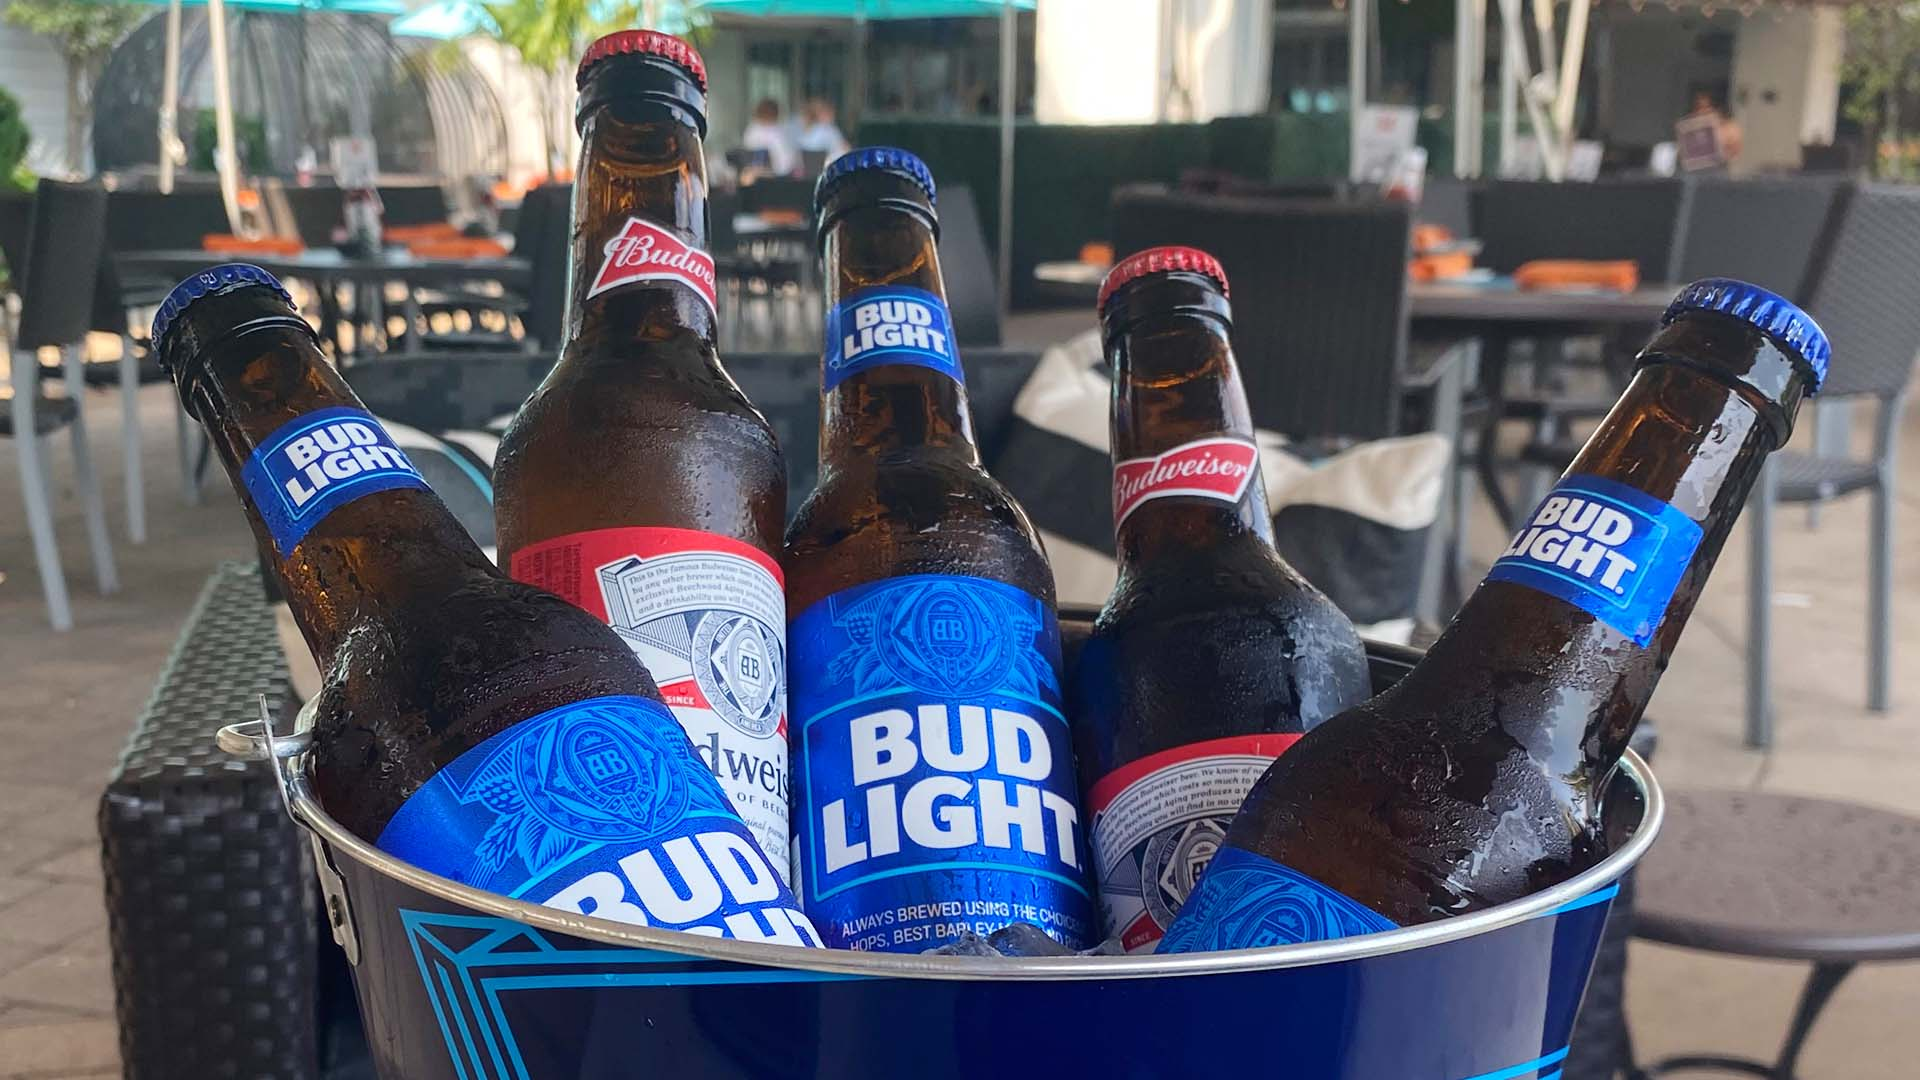 Bud and Bud Lt Beer Bottles in a Bucket Special